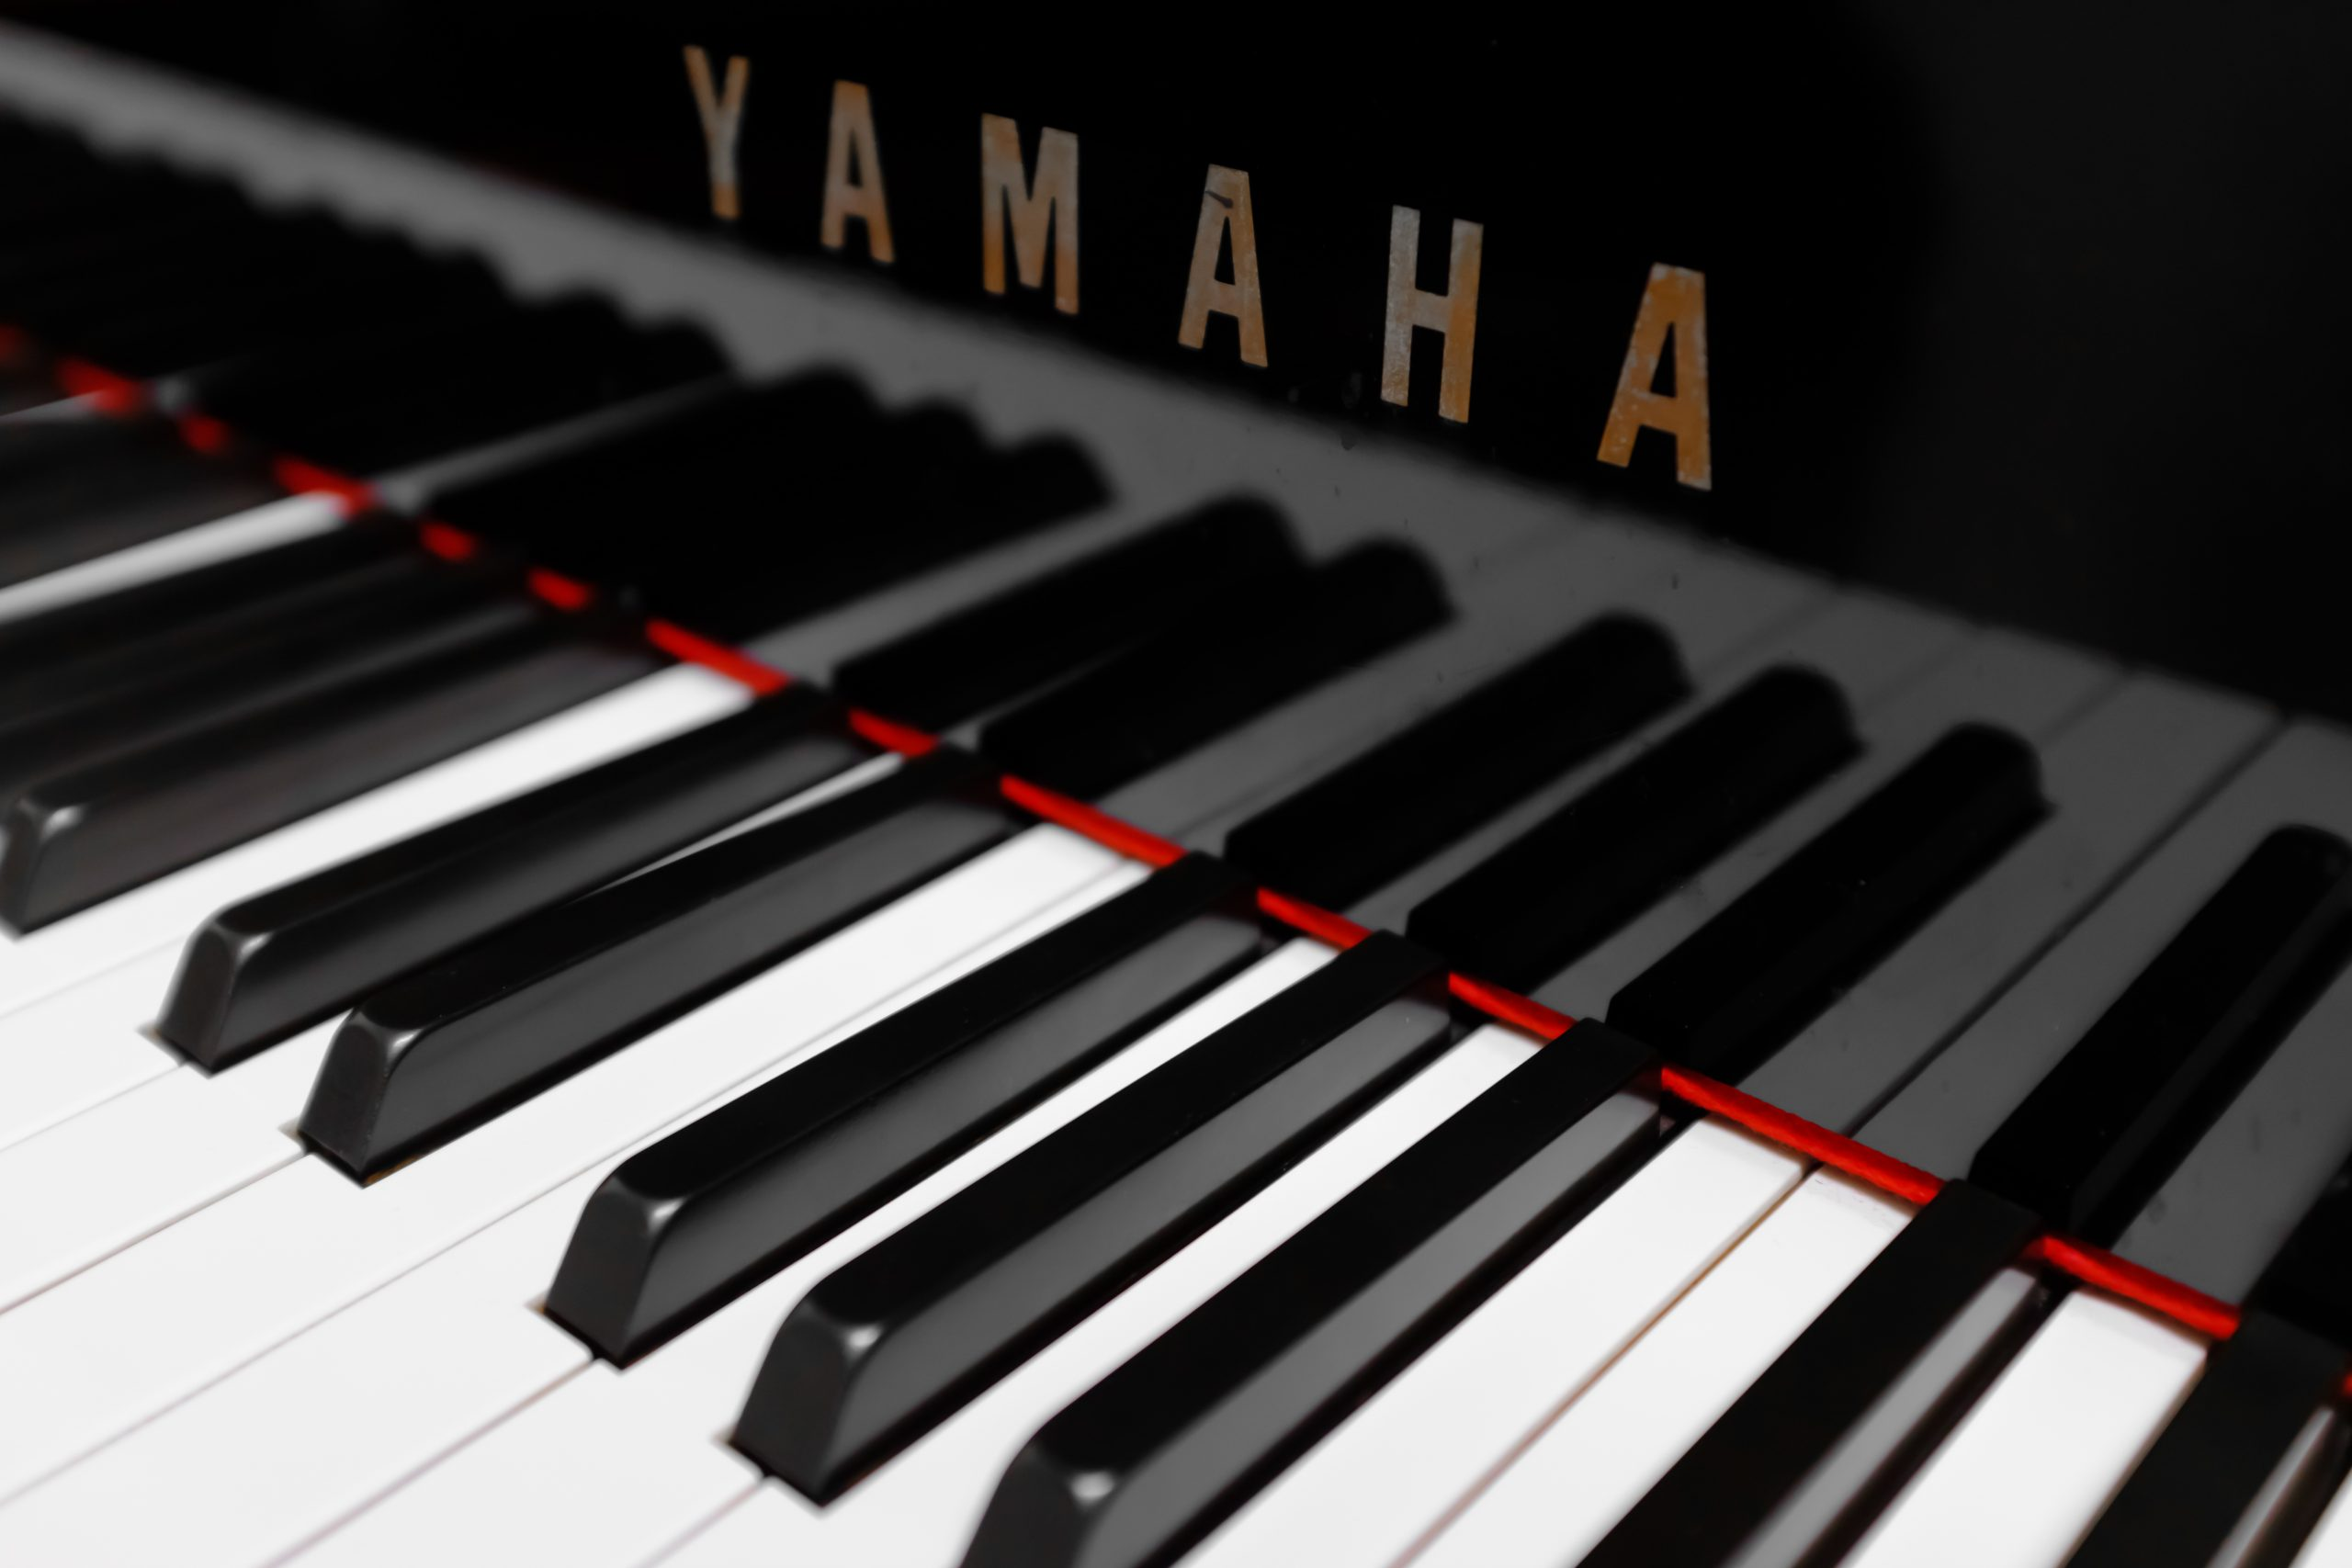 The Best Yamaha Keyboard: Shopping Guide and Recommendations (09/21)